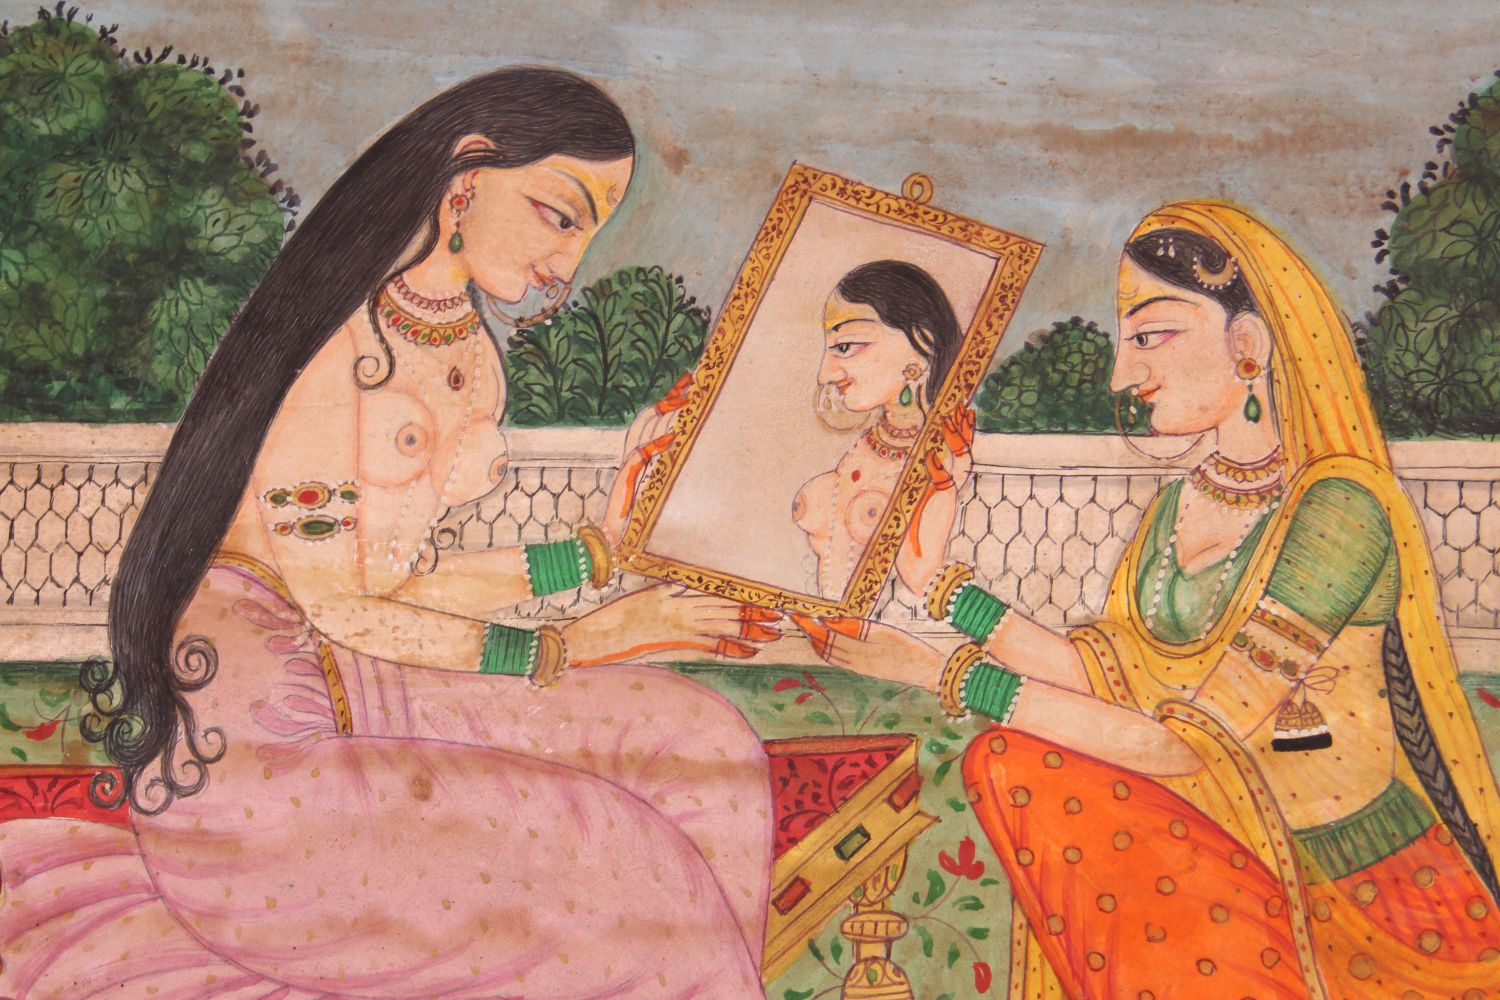 Lot 59 - A GOOD 19TH / 20TH CENTURY INDO PERSIAN MUGHAL ART HAND PAINTED EROTIC PICTURE ON PAPER , the